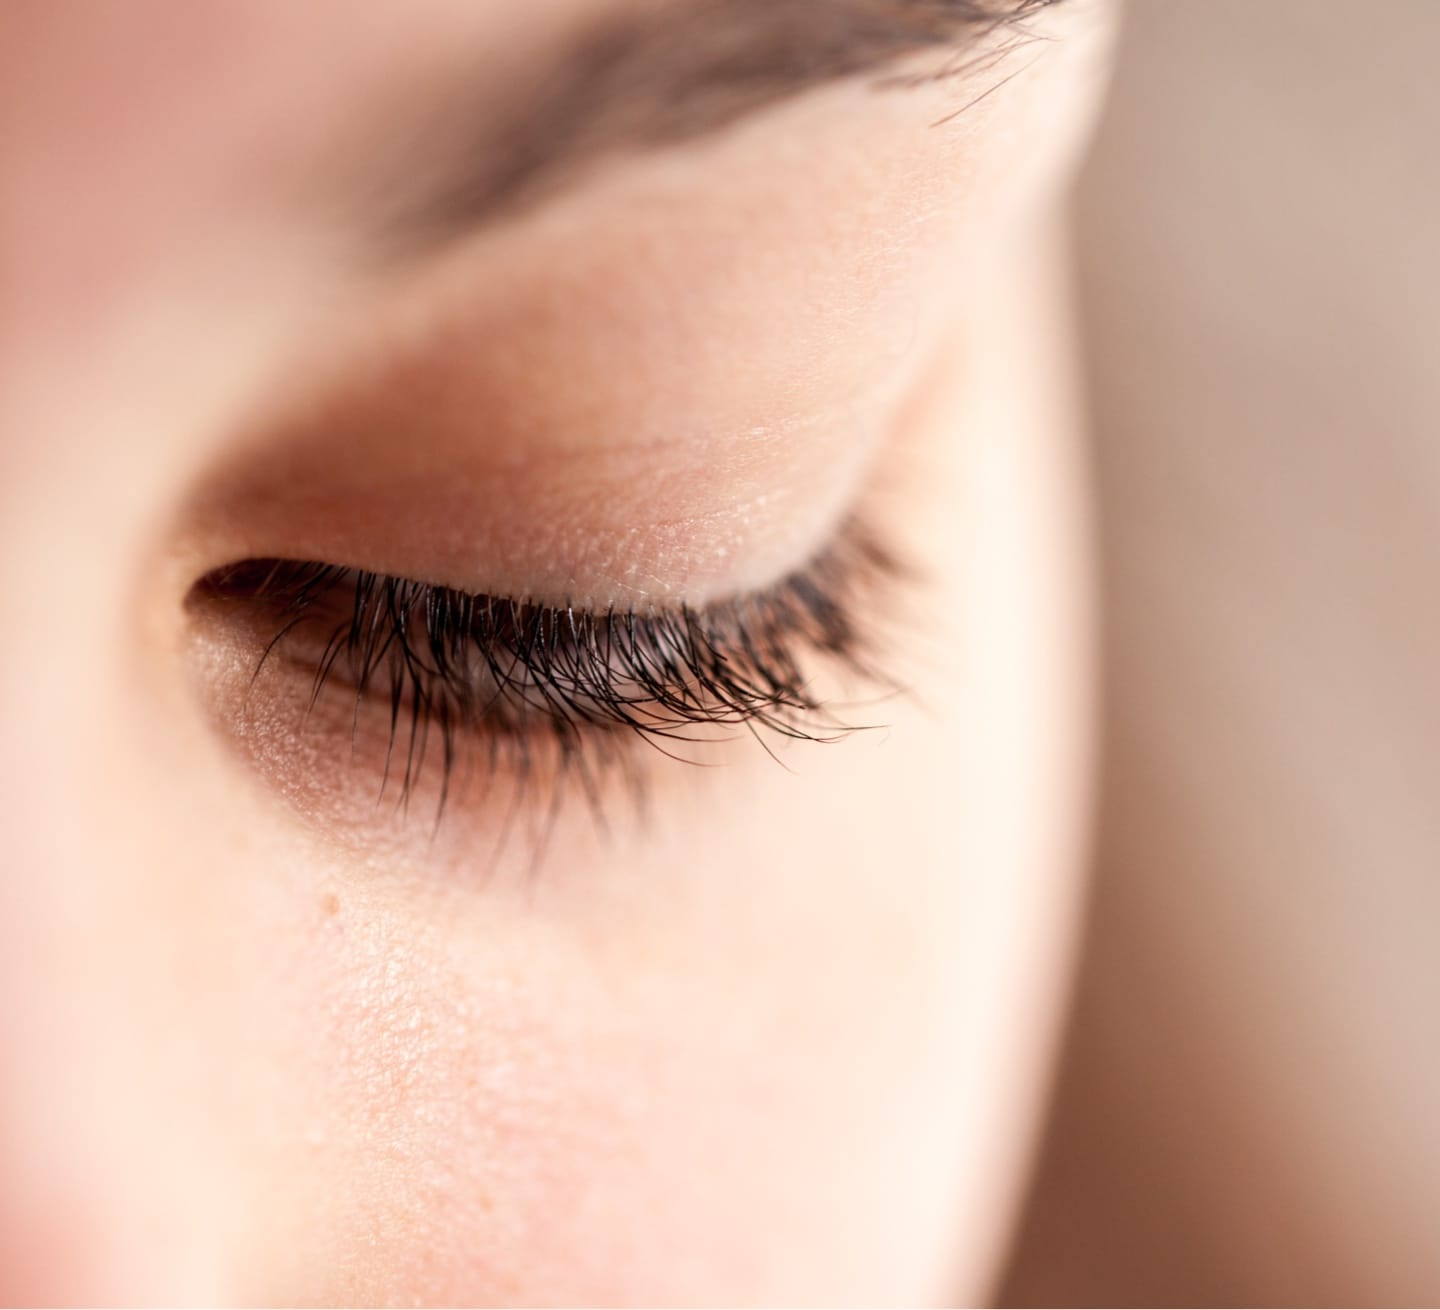 Blepharoplasty Denver